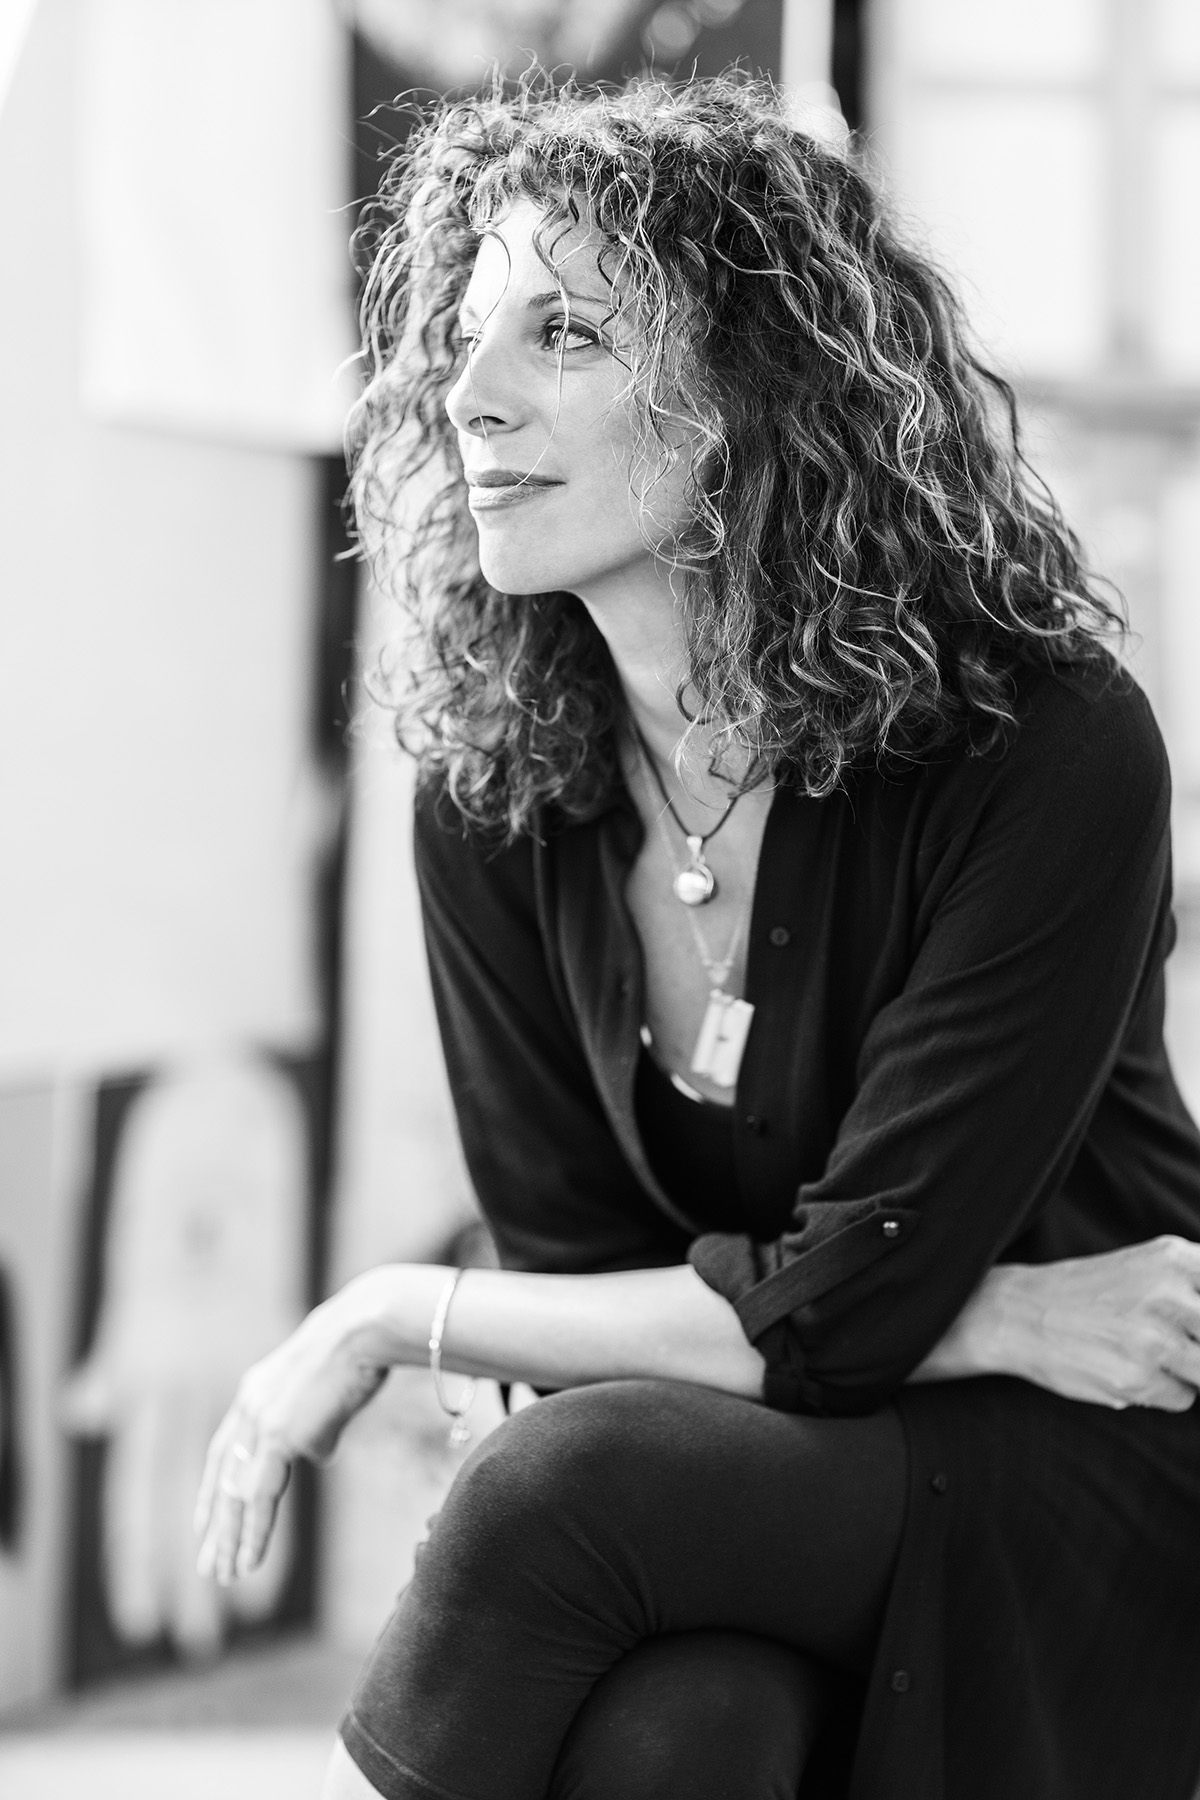 Author Orli Auslander